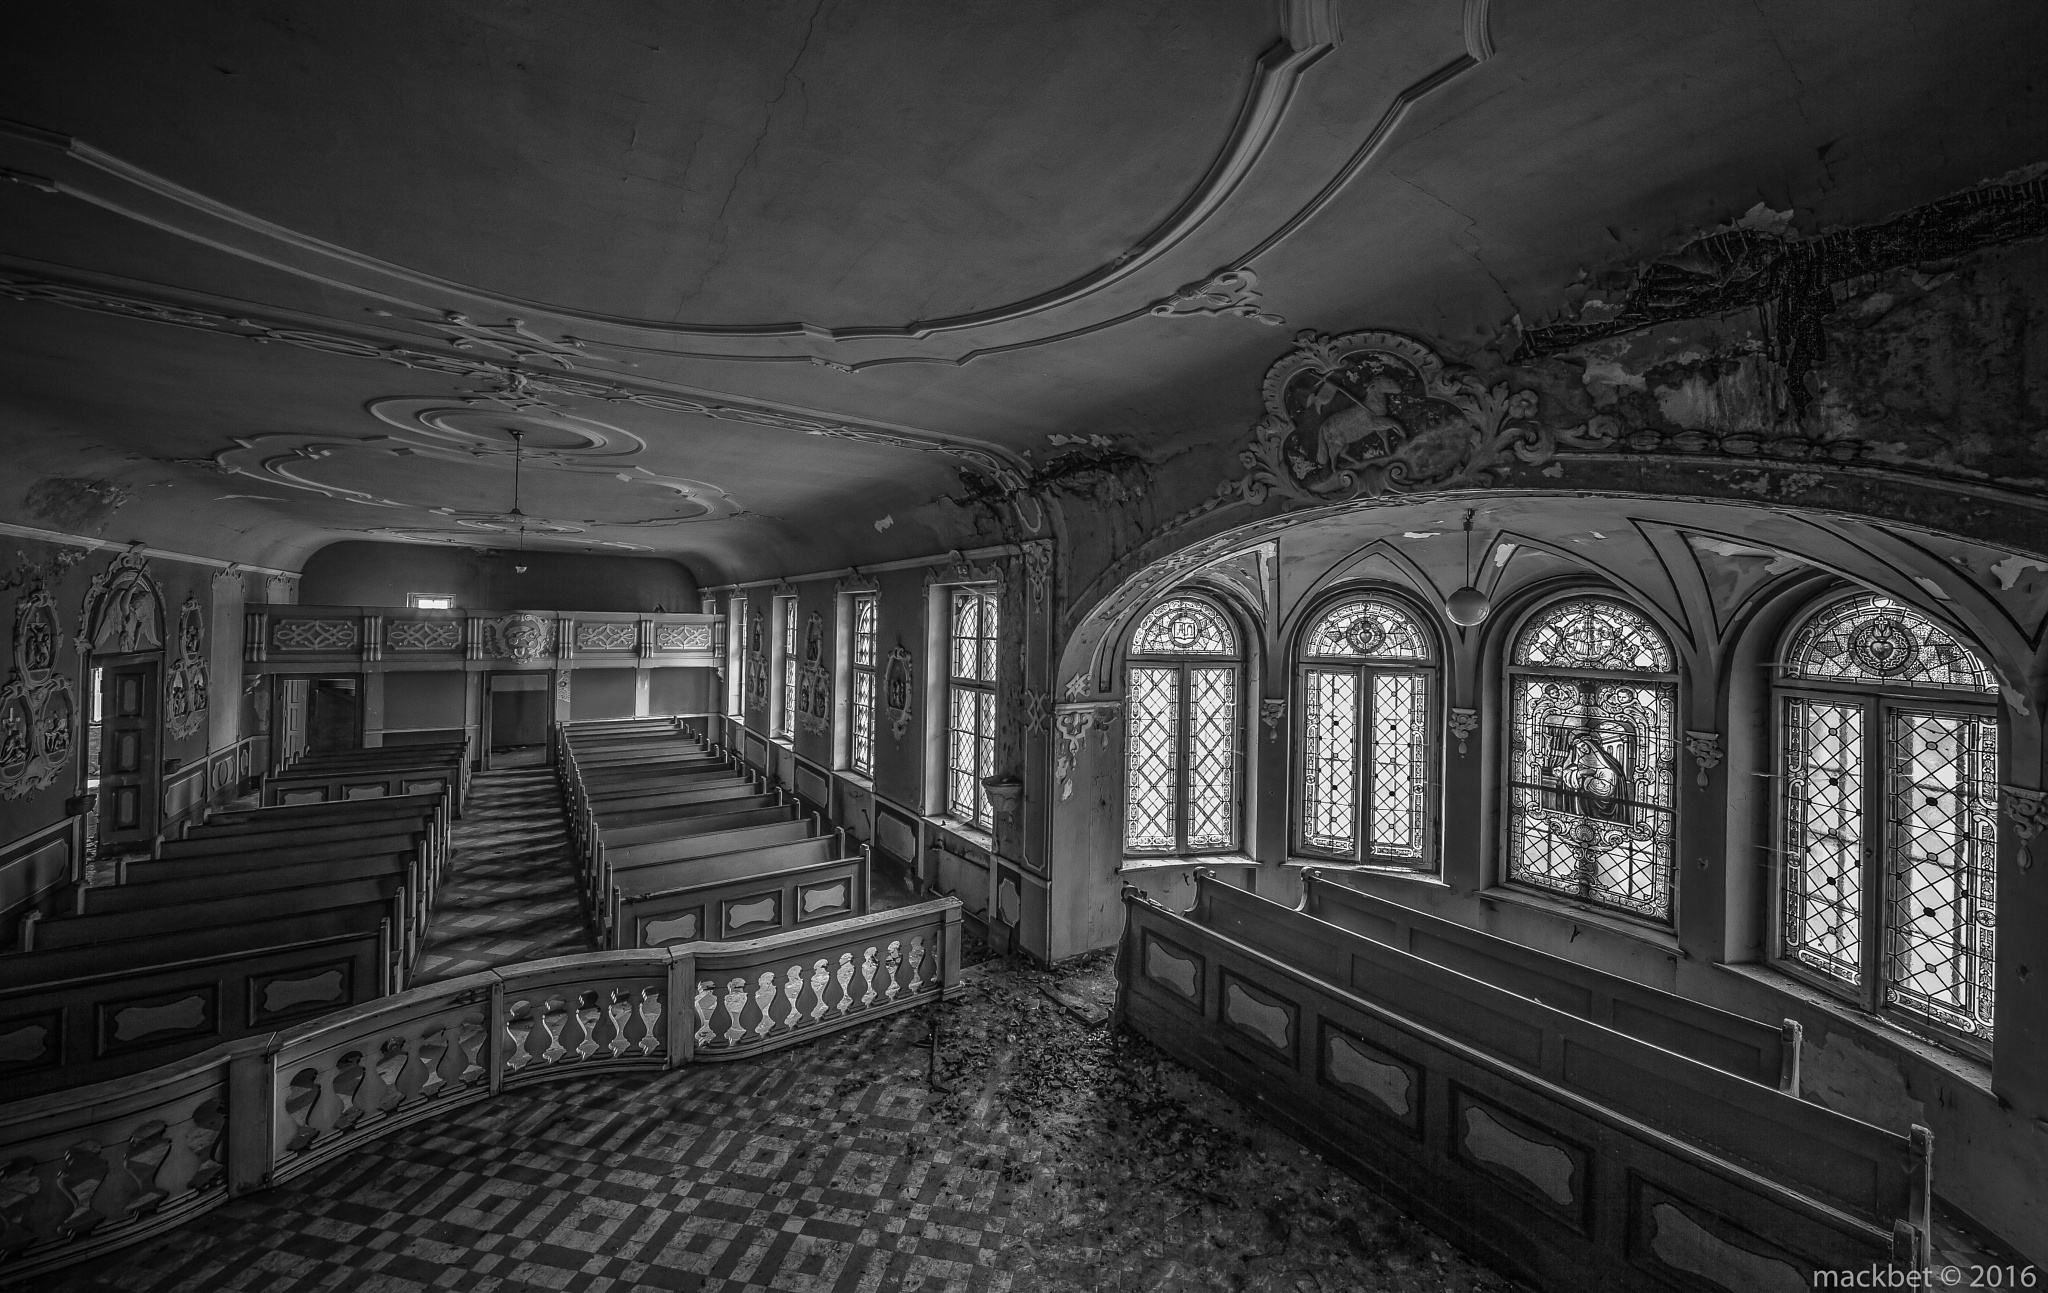 chapel by themackbet